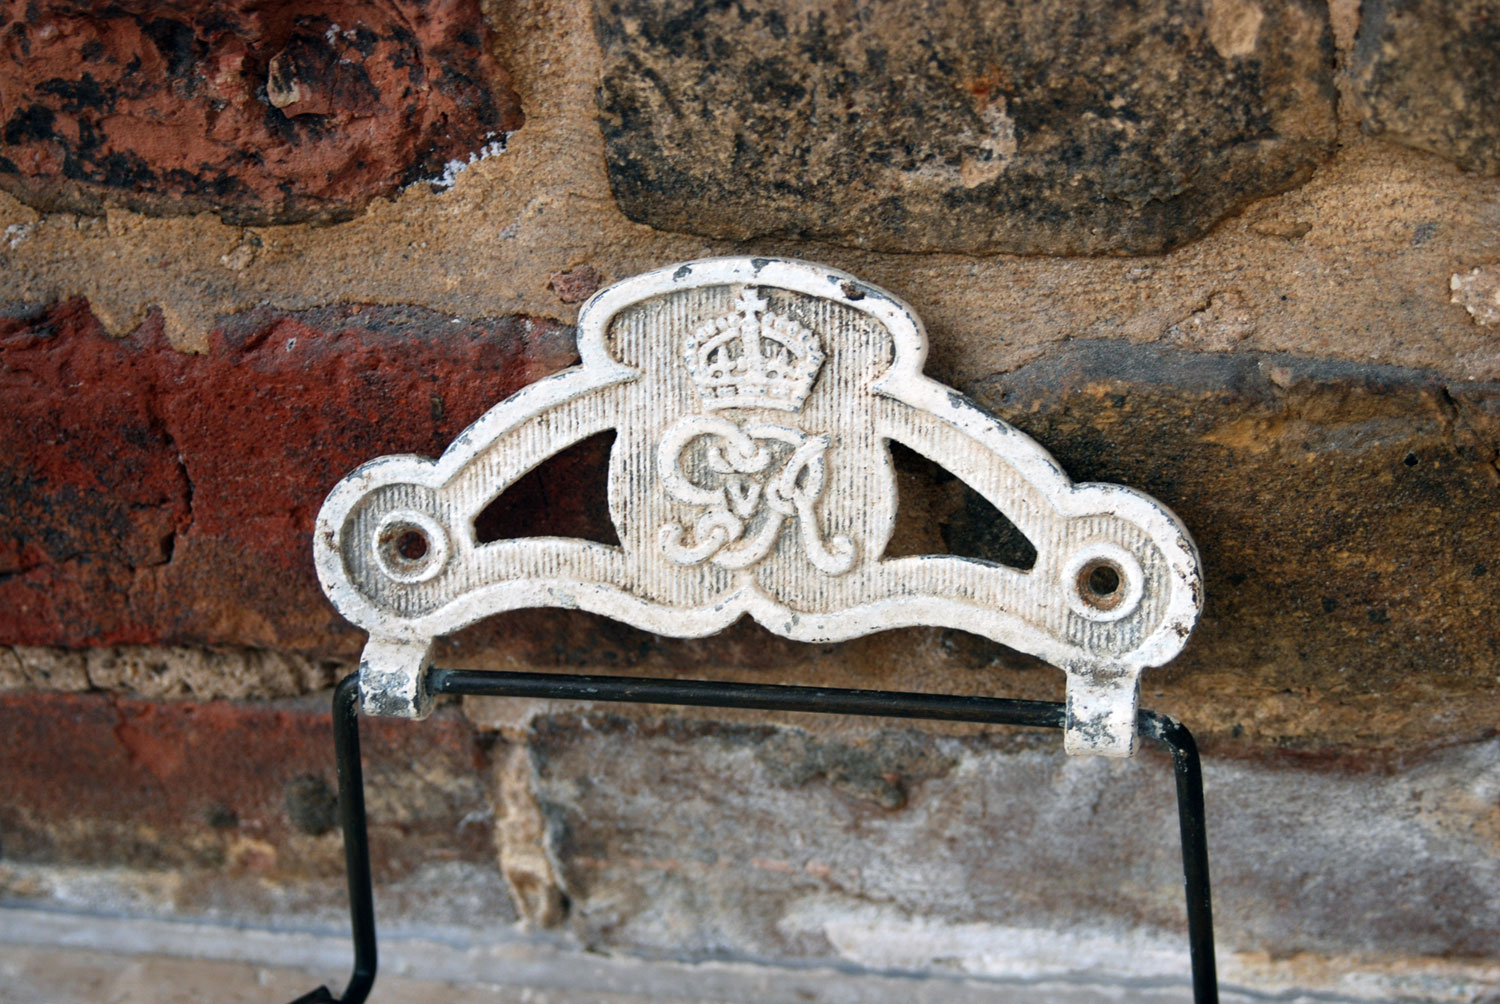 rare 1930s antique toilet loo roll holder gr king george coronation crown emblem